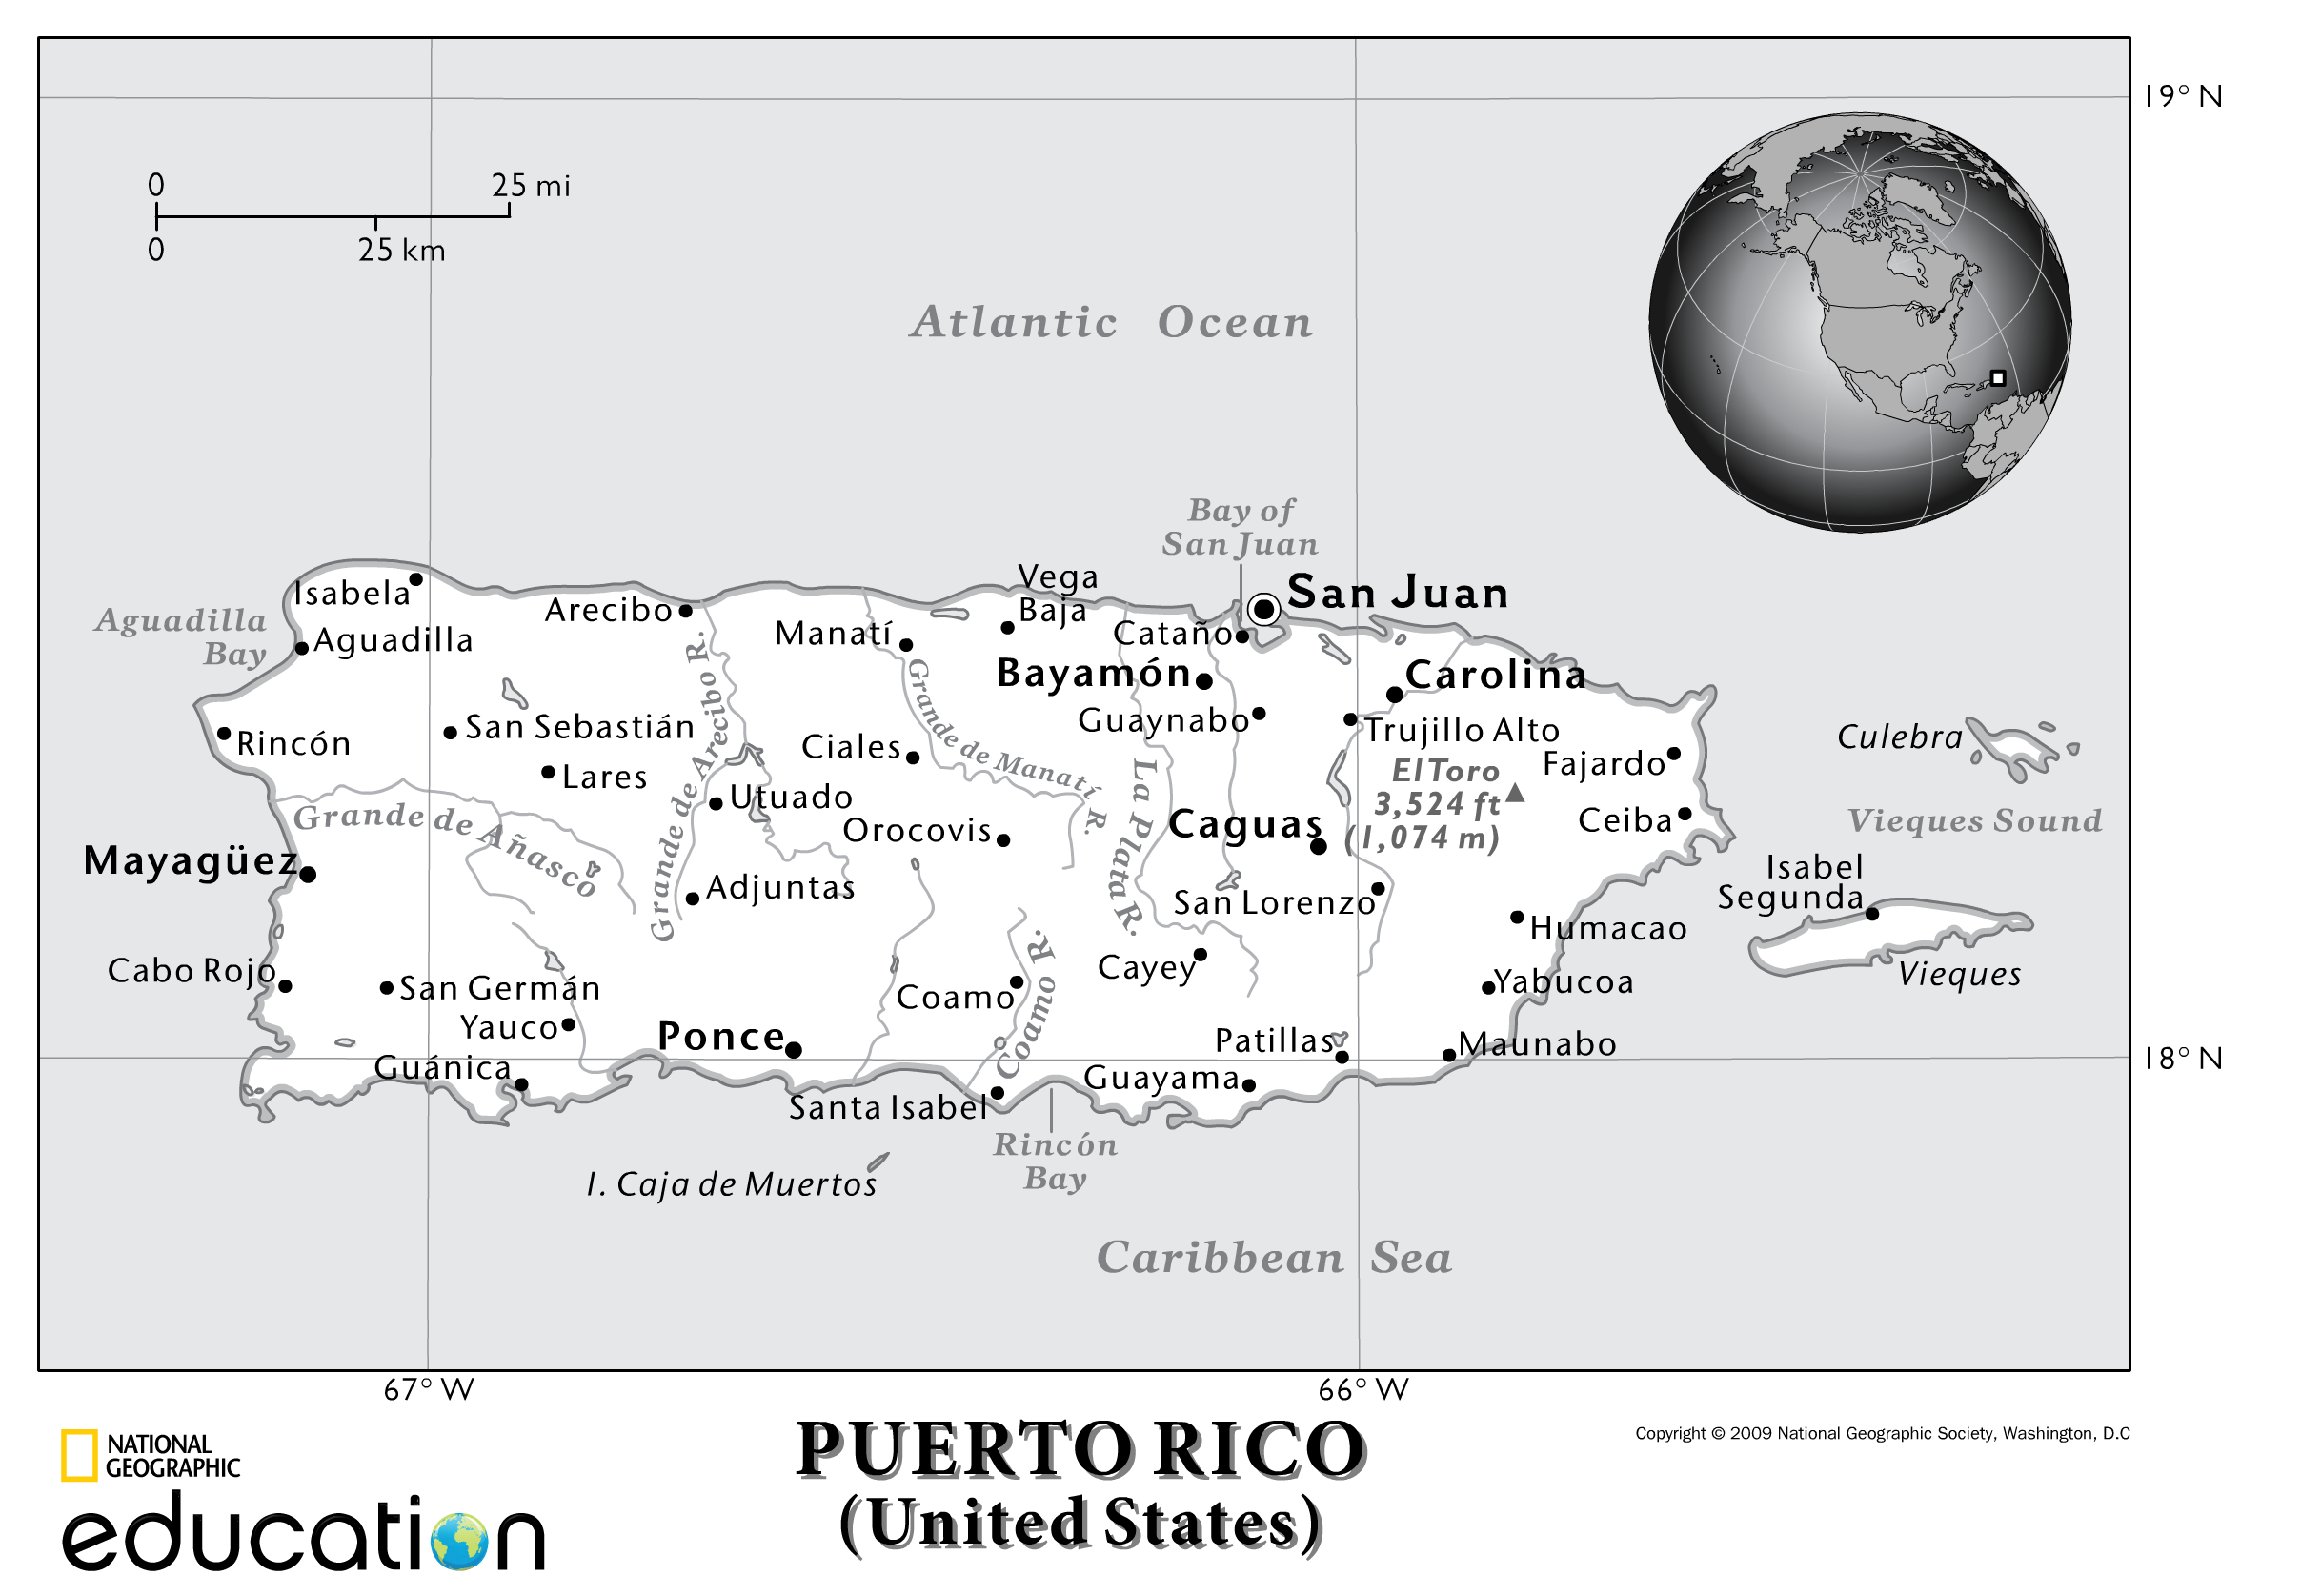 Should Puerto Rico Be a State?